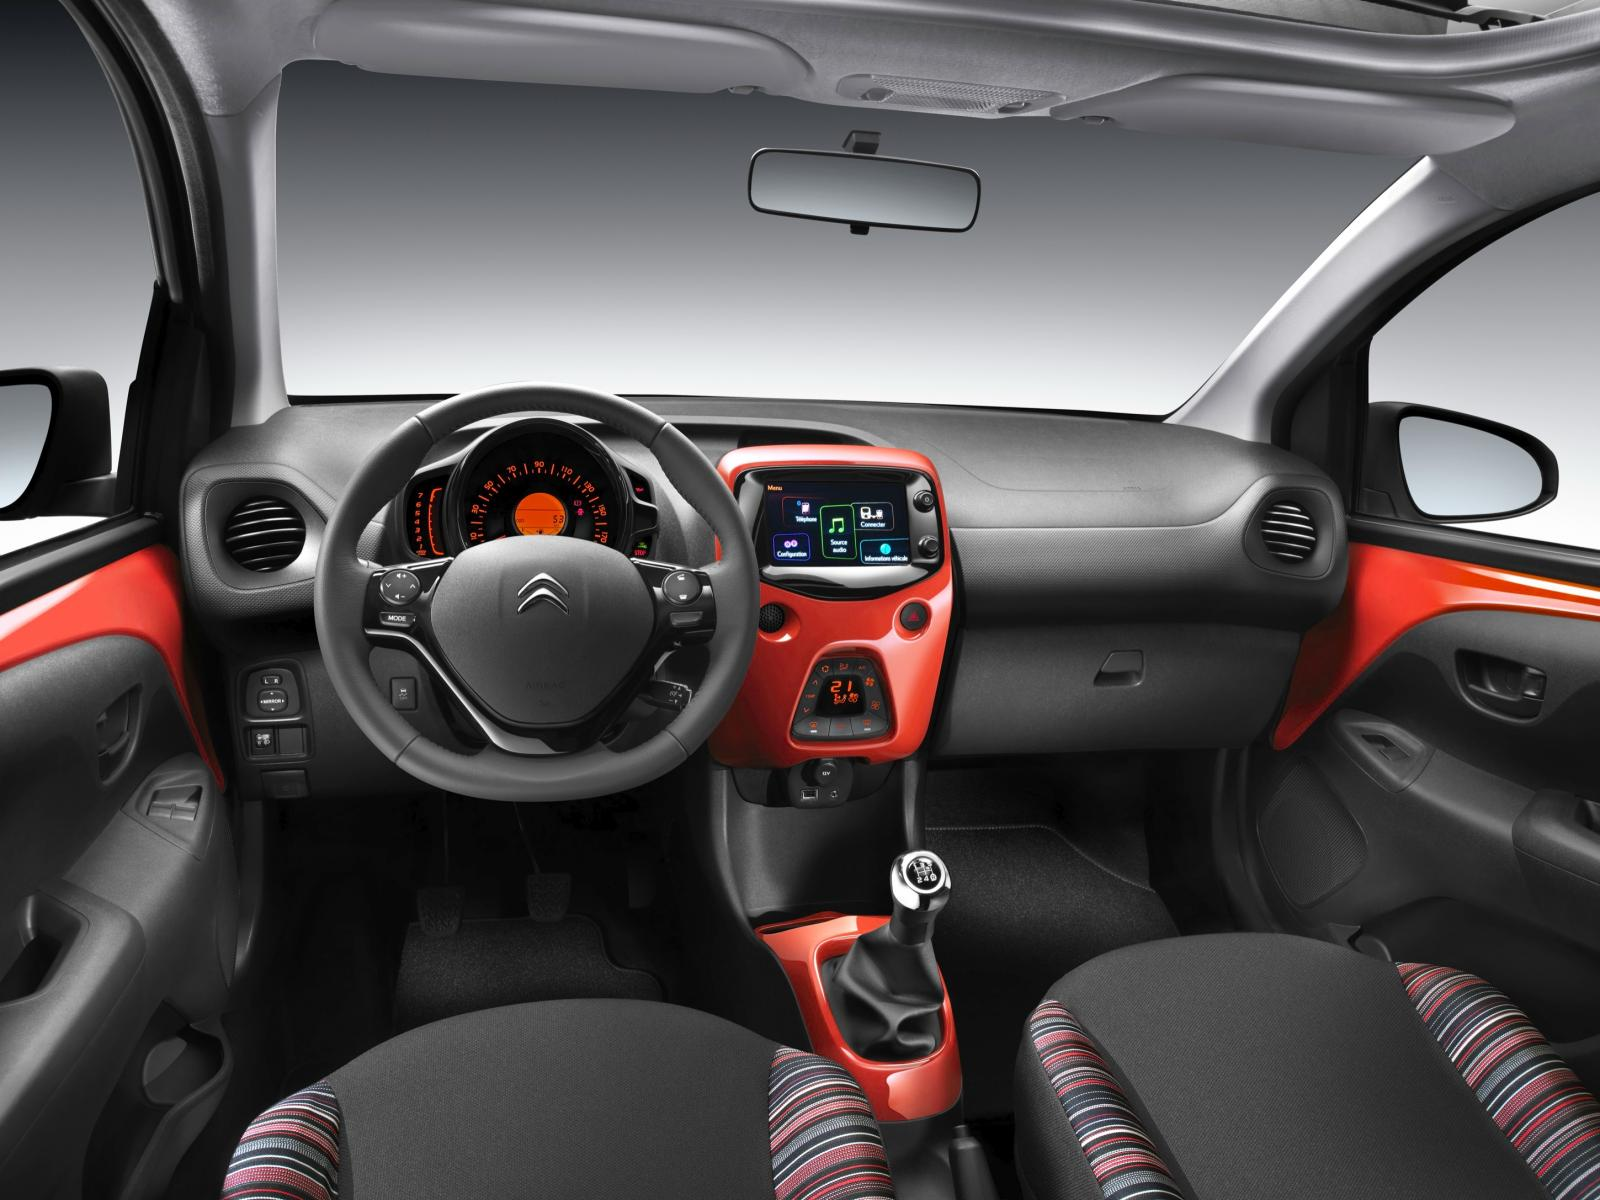 C1 Airscape Feel Edition 2014 interior Pack Color Sunrise Red